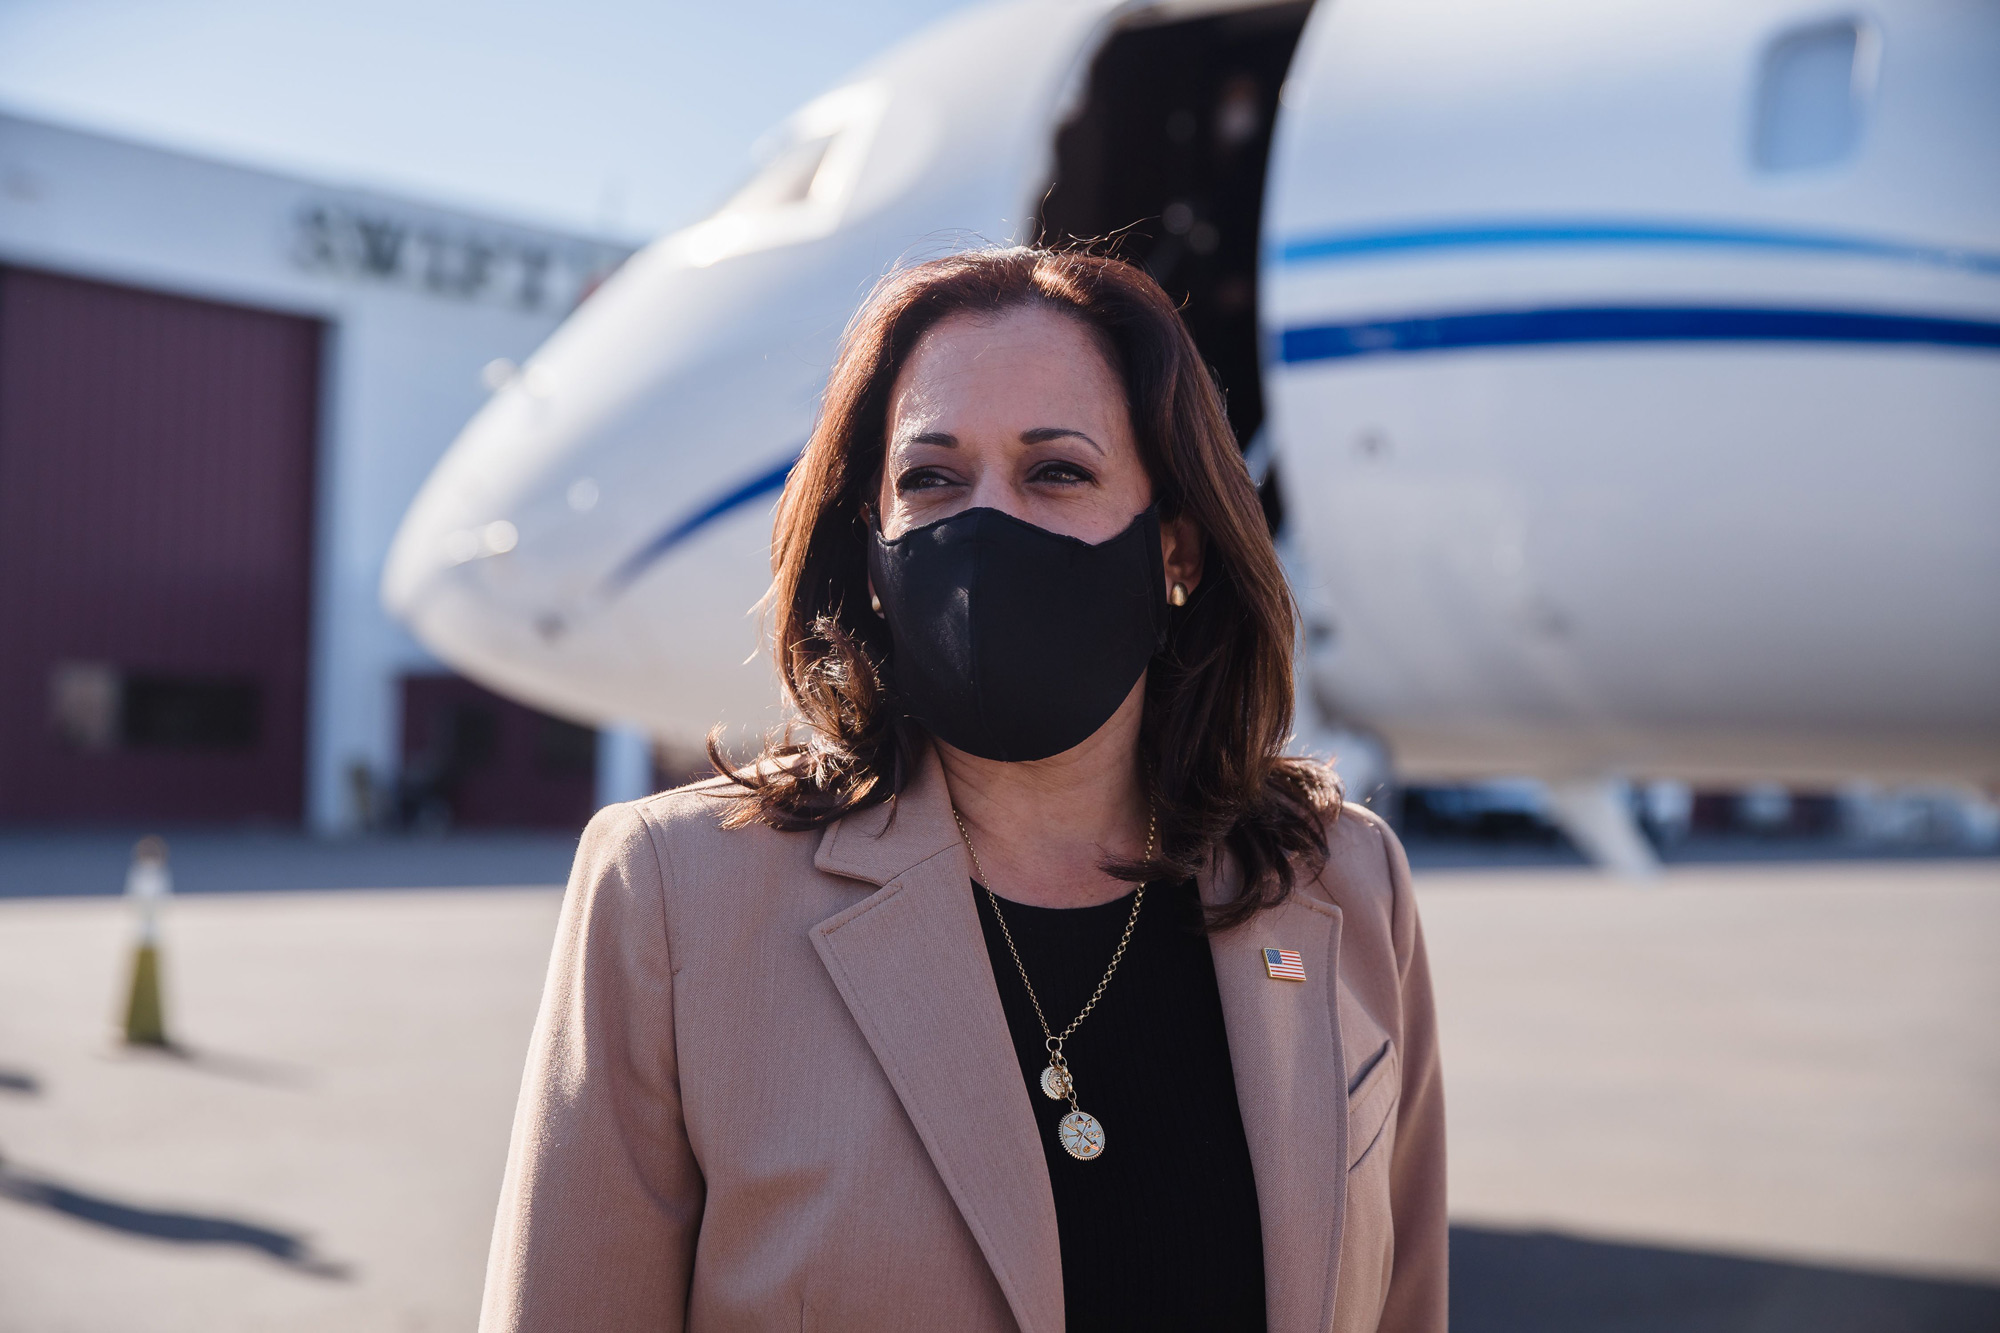 Democratic vice presidential nominee Kamala Harris speaks to the media as she arrives at Phoenix airport ahead of a campaign rally in Phoenix, Arizona on October 28.